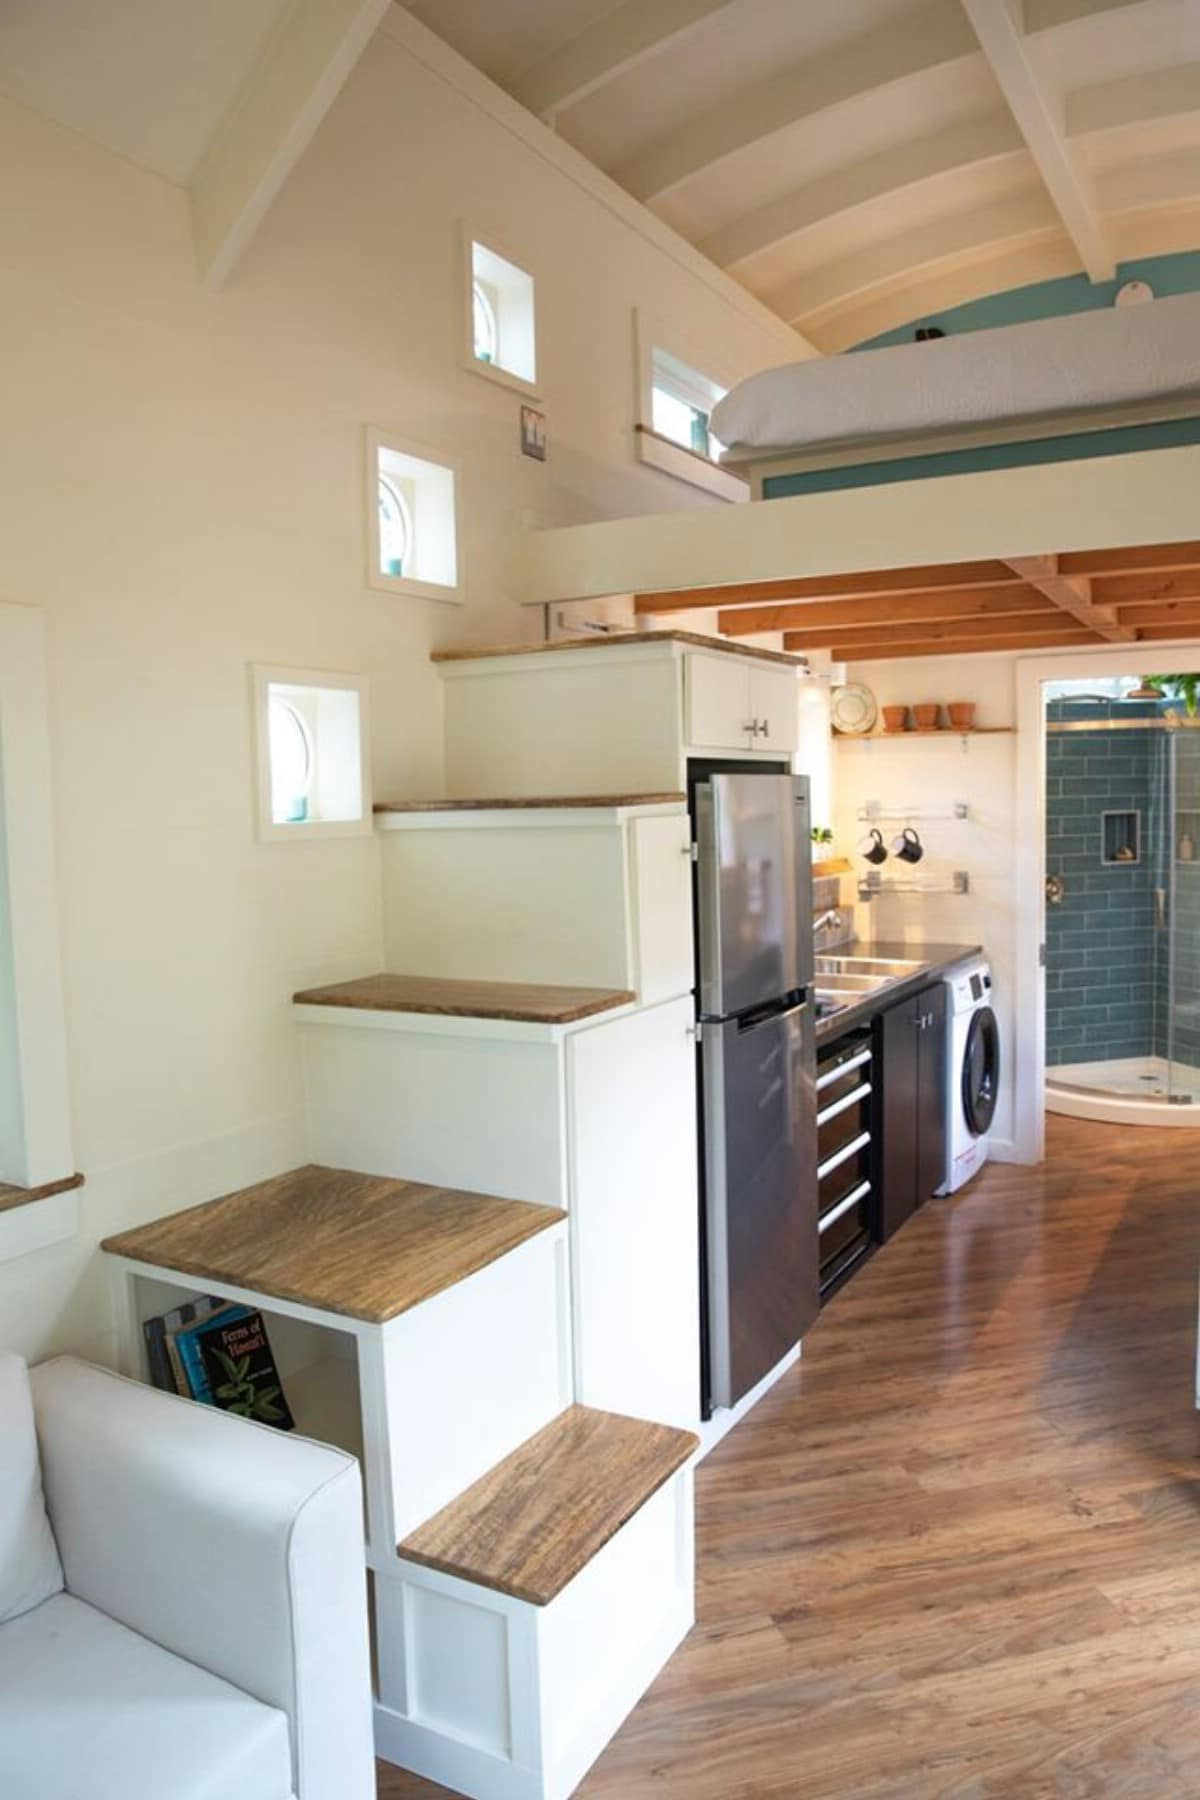 oasis tiny house 13 - Hawaiian tiny house is stacked with space-saving solutions including a shower jutting out over the trailer's tongue